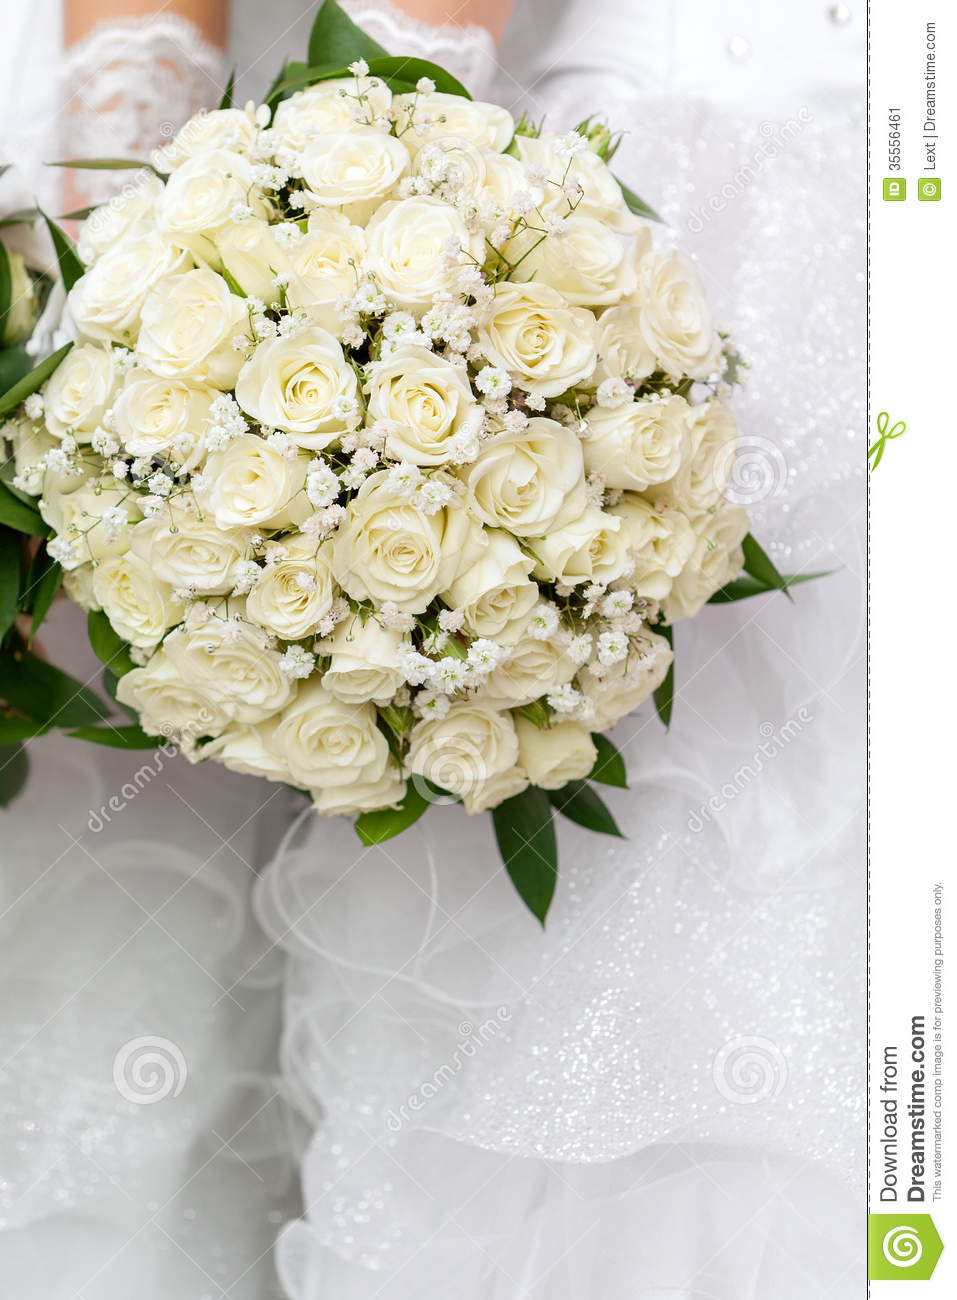 Wedding Bouquet From Flowers In Hands Of The Bride. Stock Image ...